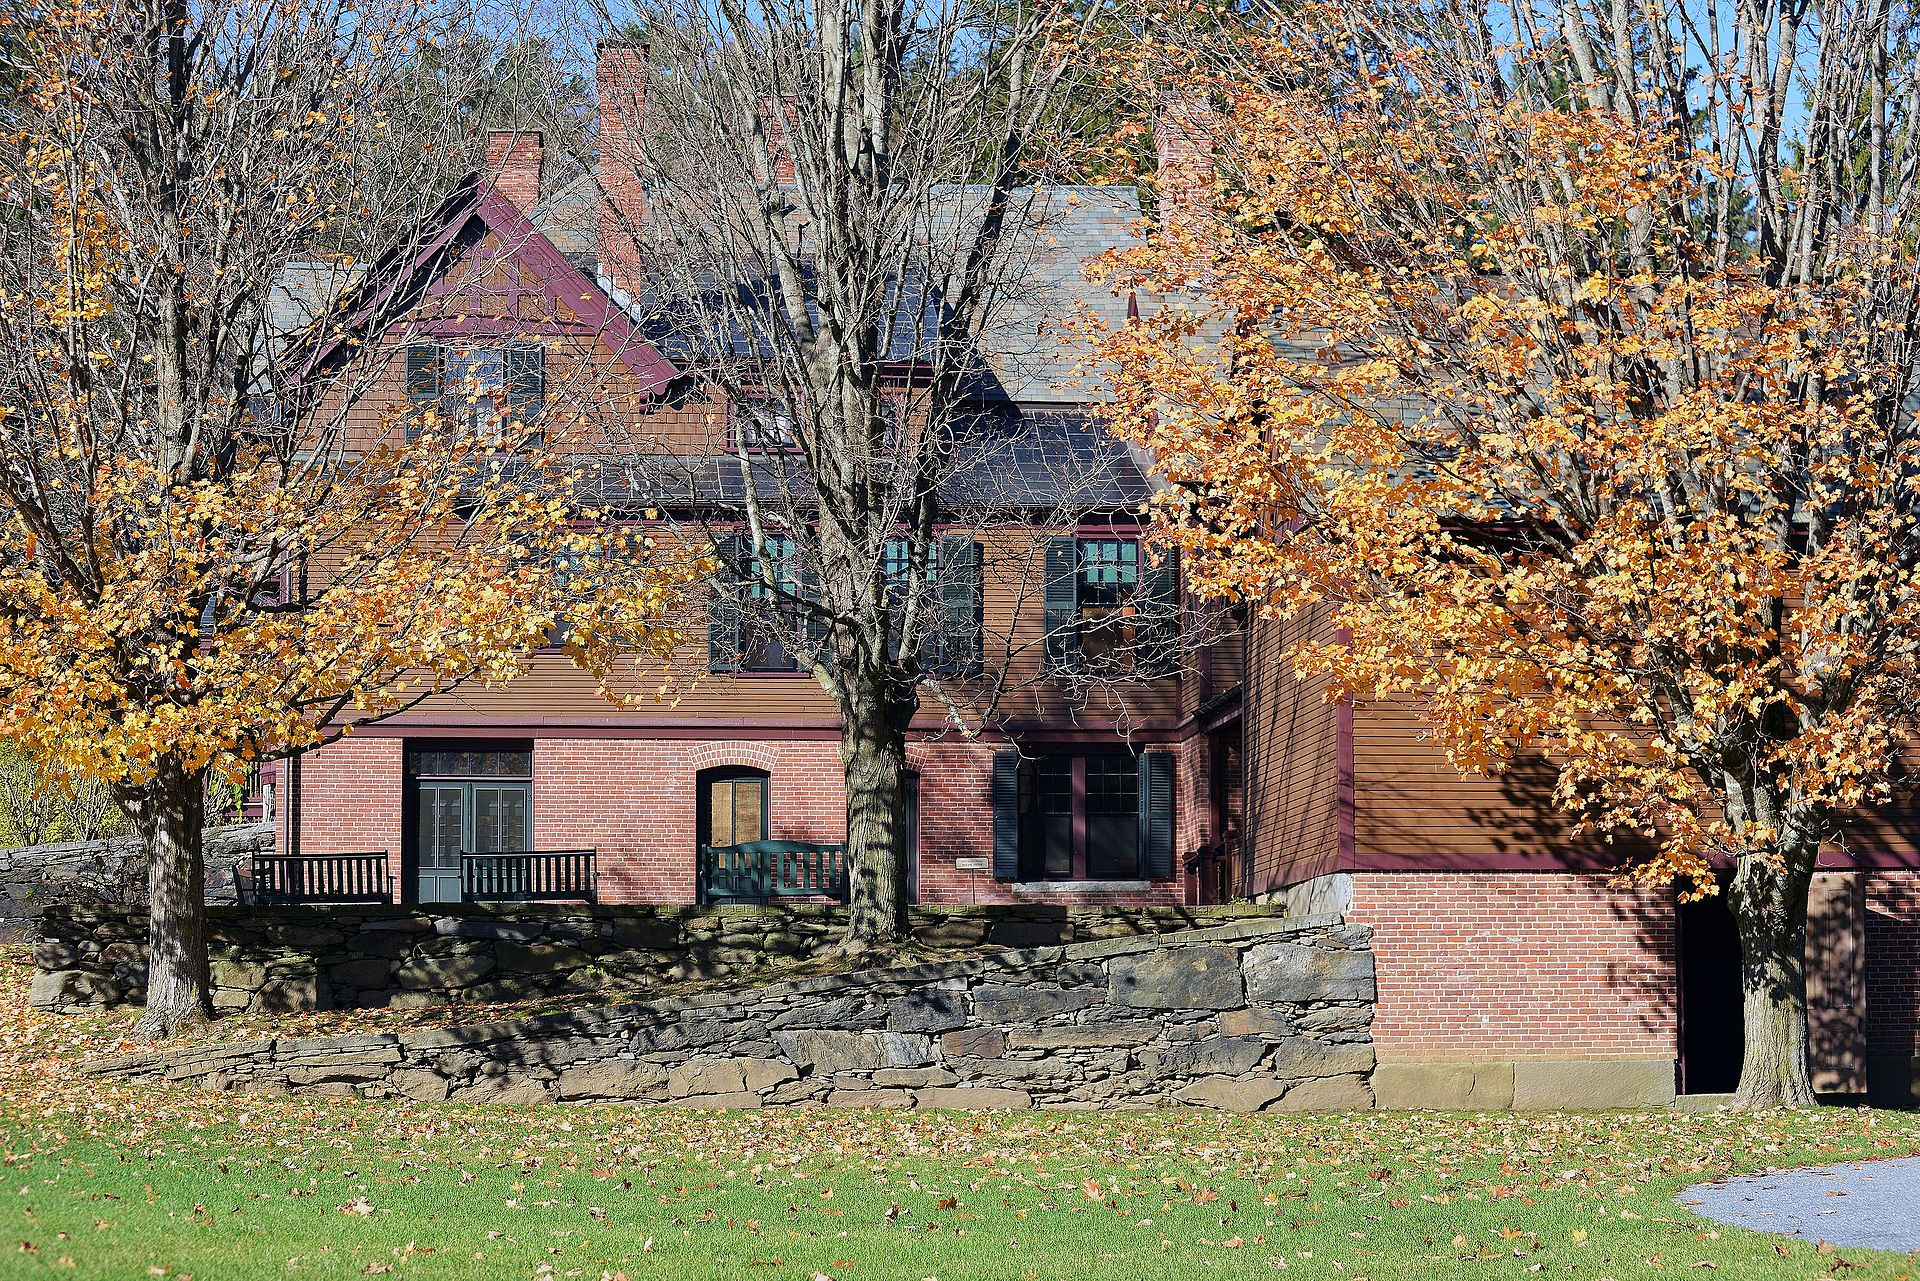 A view of Billings Farm and Museum.